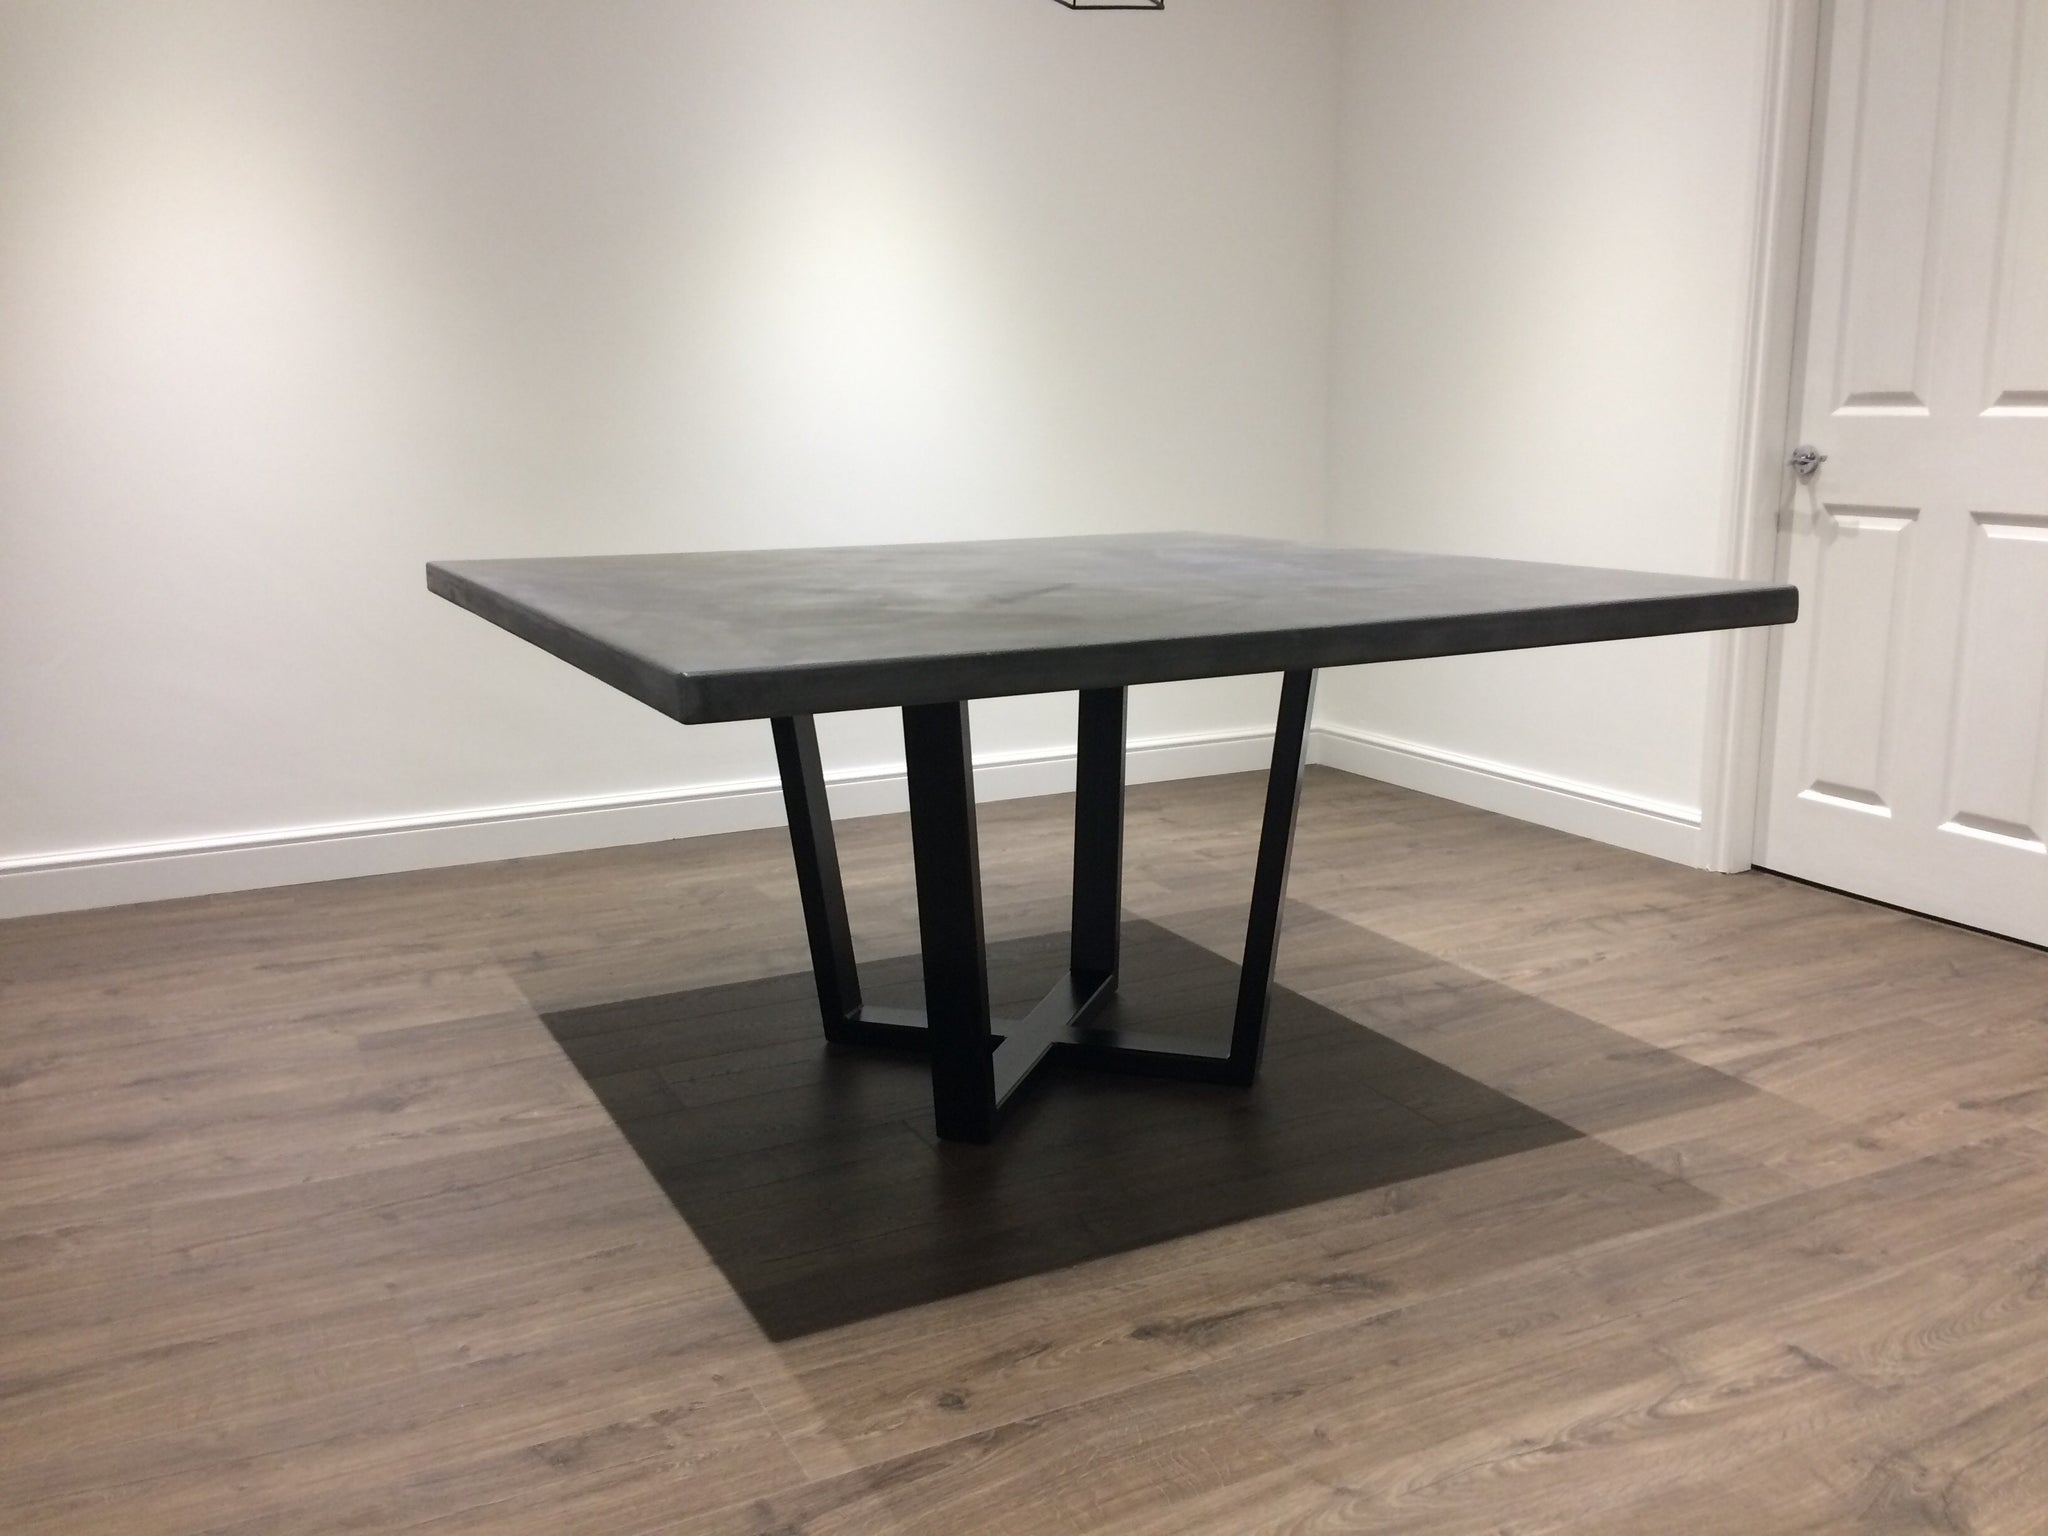 Mid Grey Polished Concrete Square Dining Table With Steel Pedestal Bas Daniel Polished Concrete